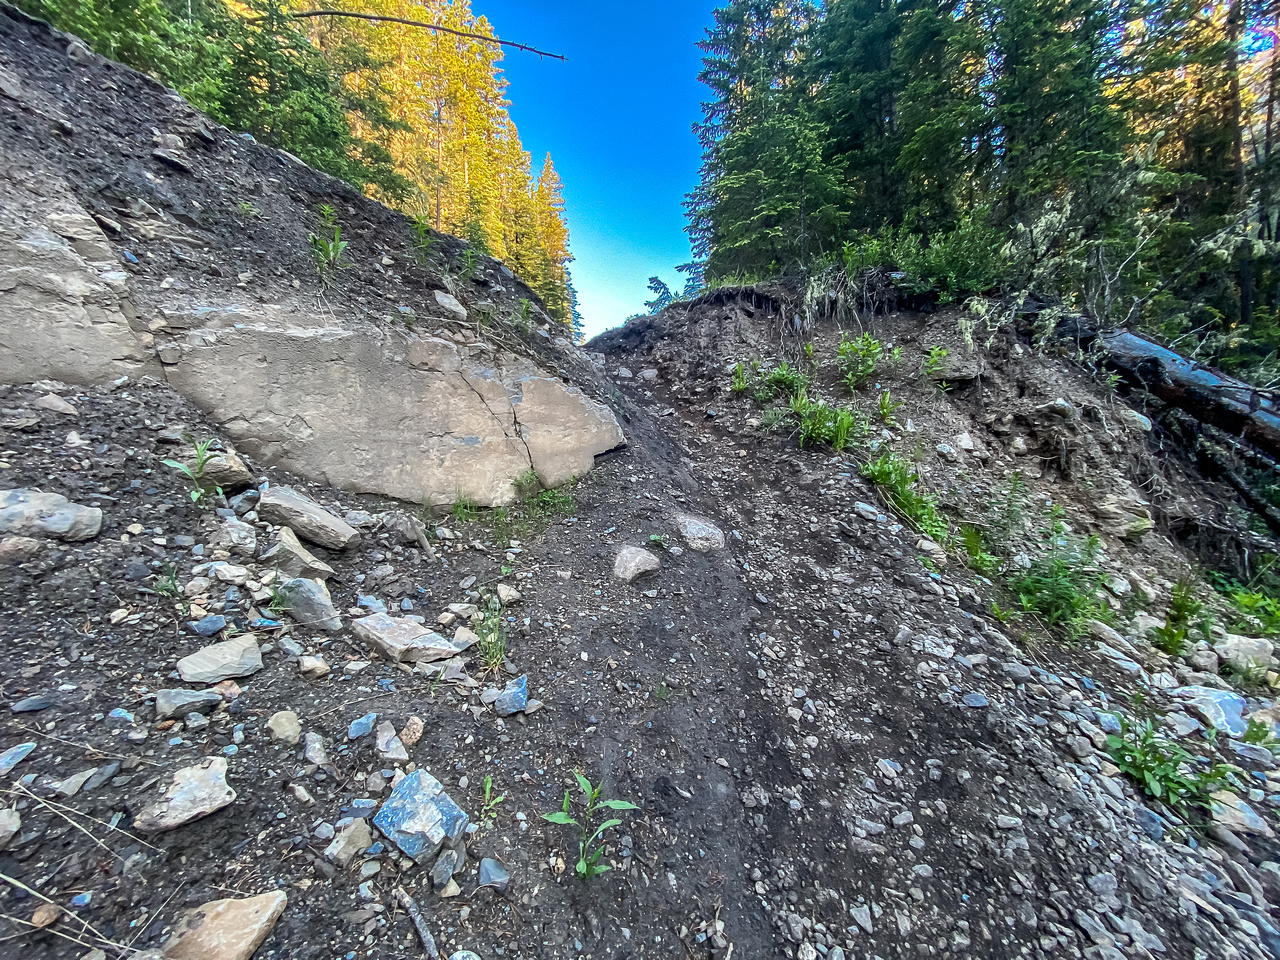 Heavily damaged part of the Sheep River Trail before the end of the first 5.5km.